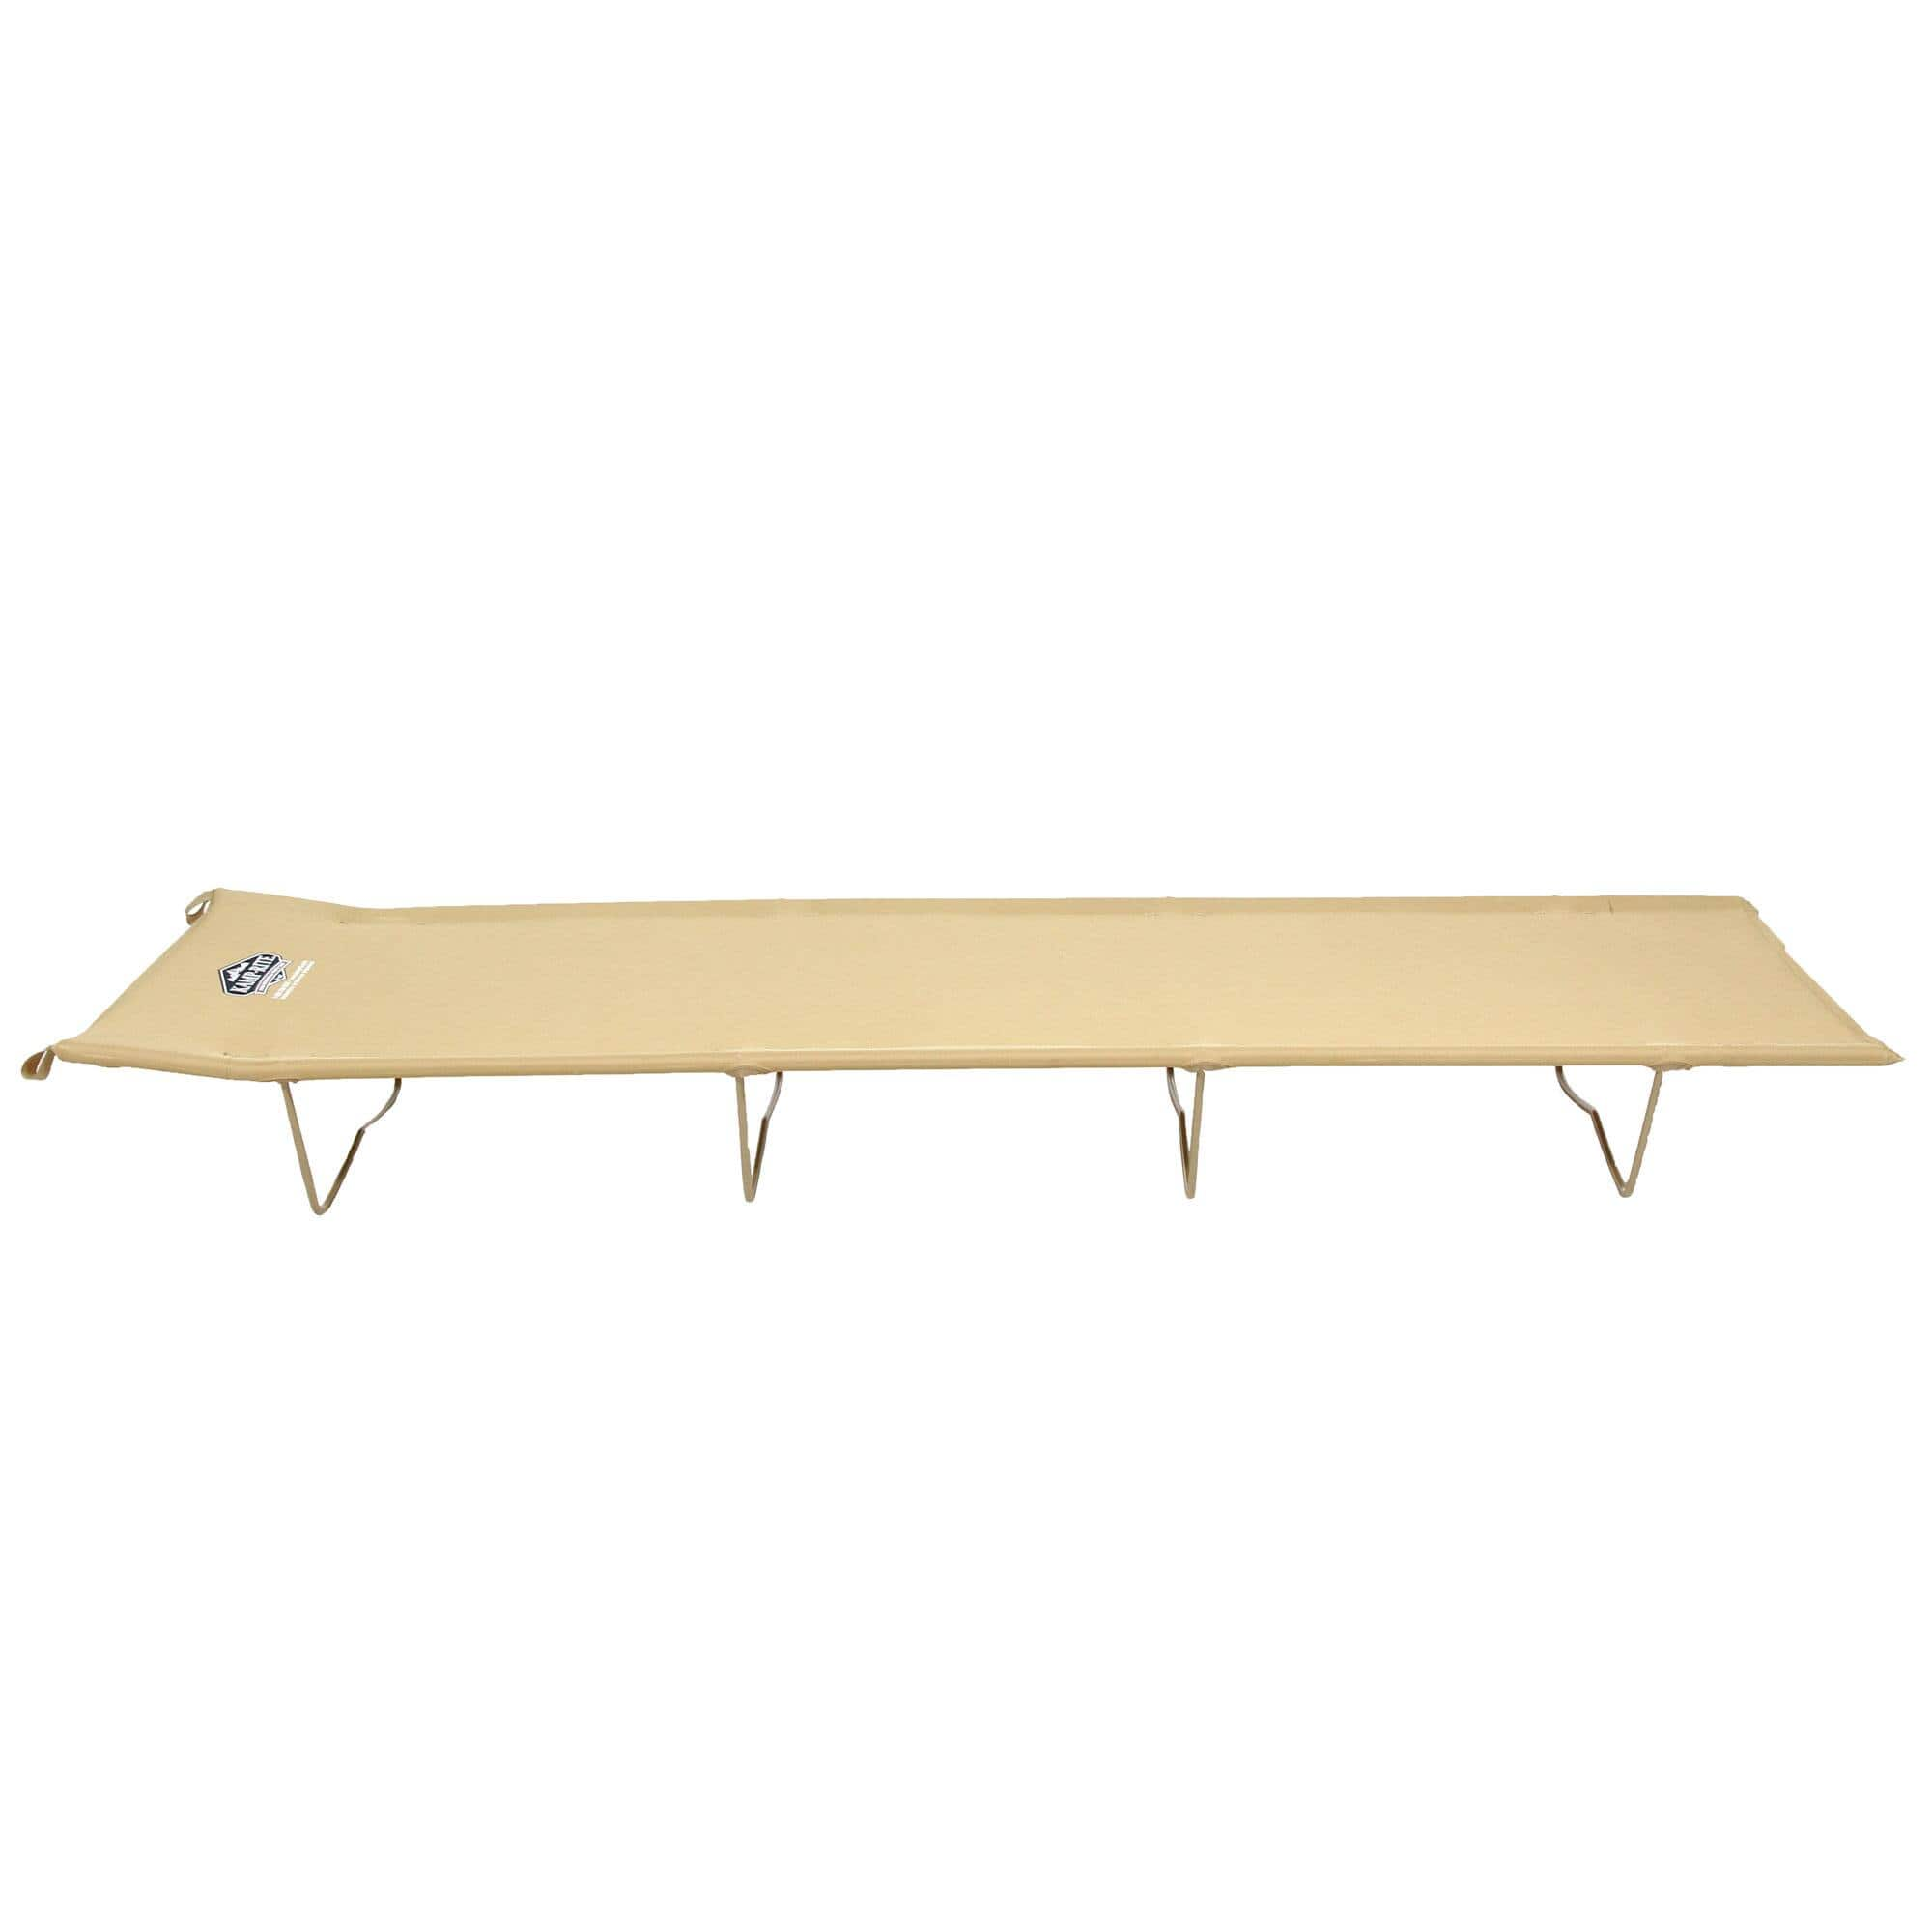 Kamp-Rite Economy 84x53x40 Inch Compact Light Backpacking Camping Bed Cot, Tan $27.99 + FS